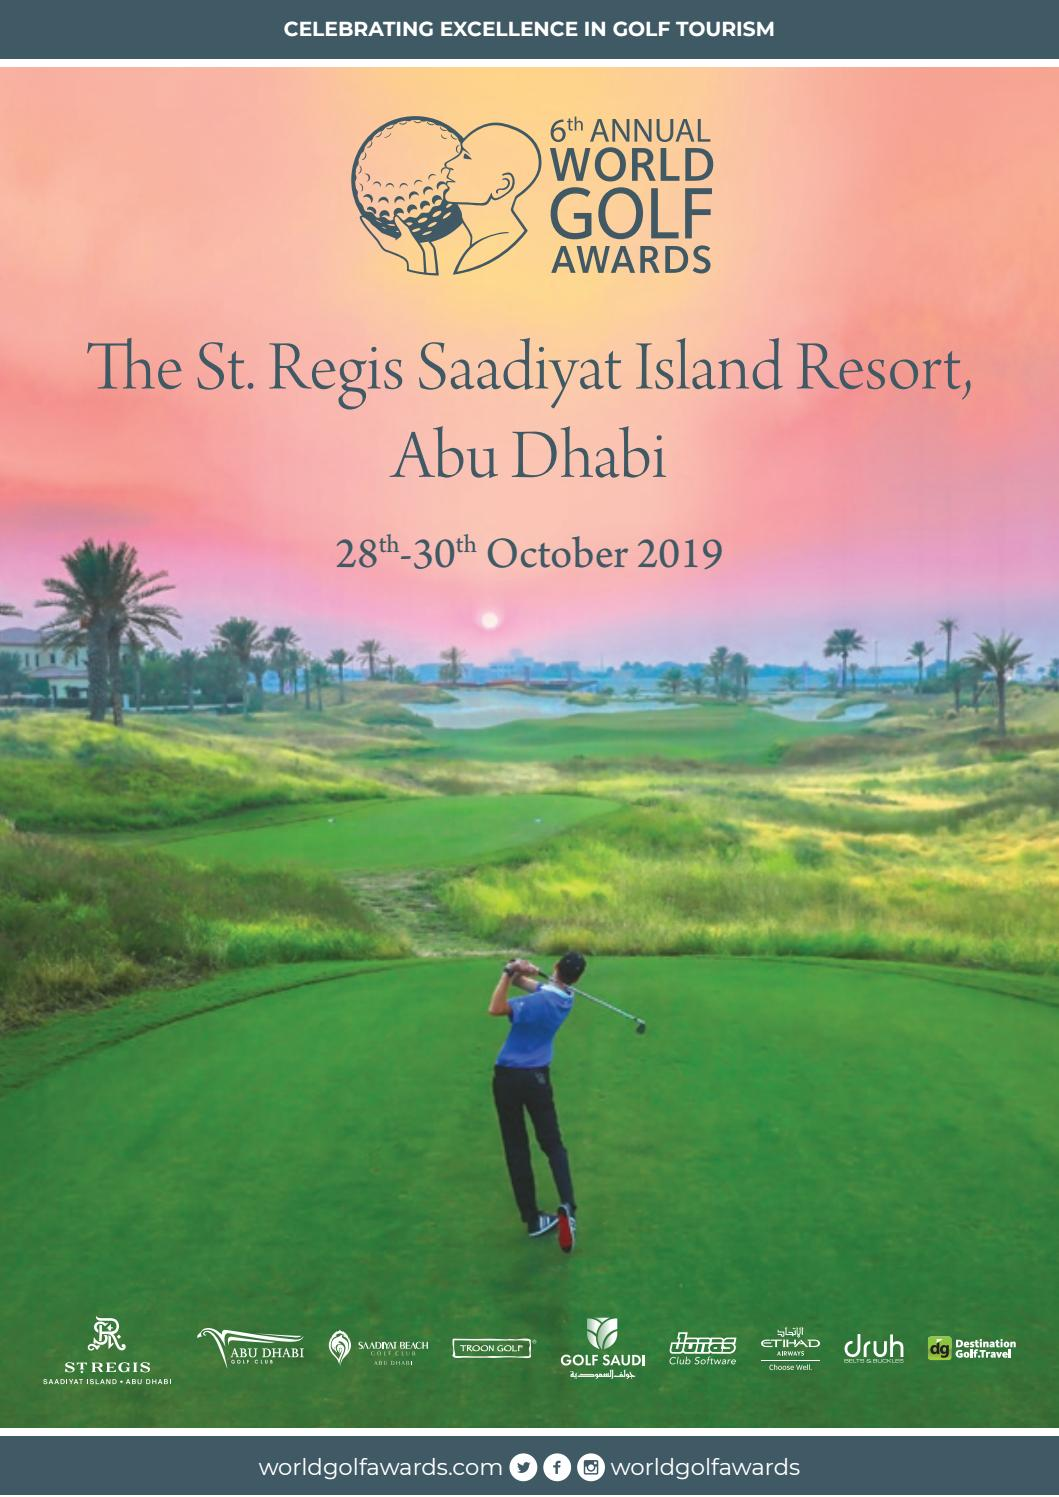 World Golf Awards 2019 event programme